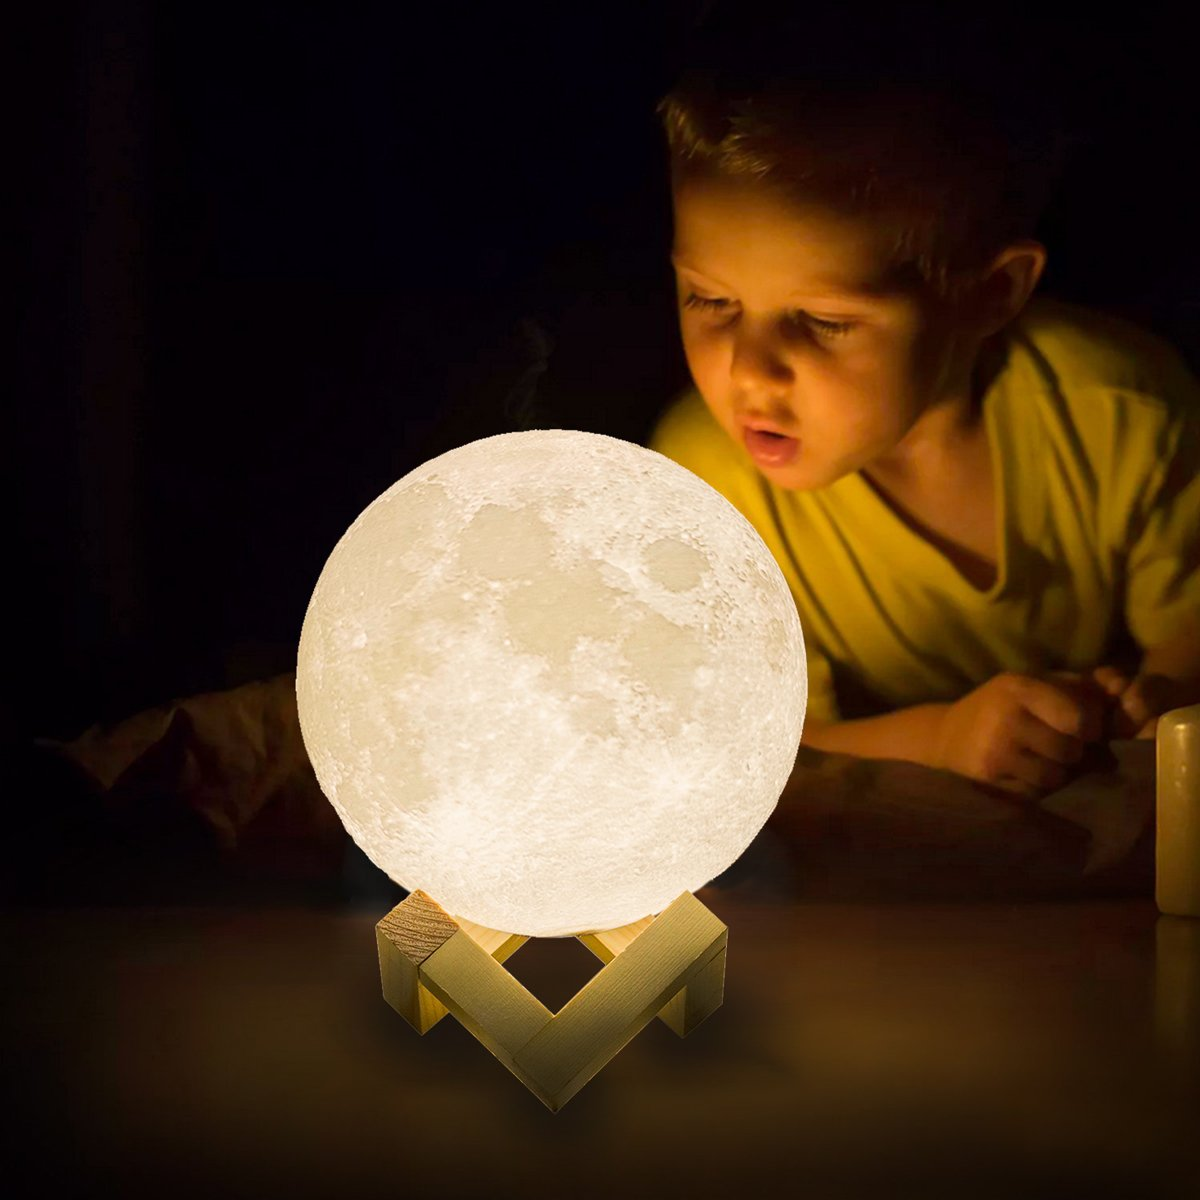 Night Light Moon Lamp Touch Switch Bedroom Decoration LED Birthday Gift 3D Print Rechargeable Moon Lamp Bedroom Night Light Lamp